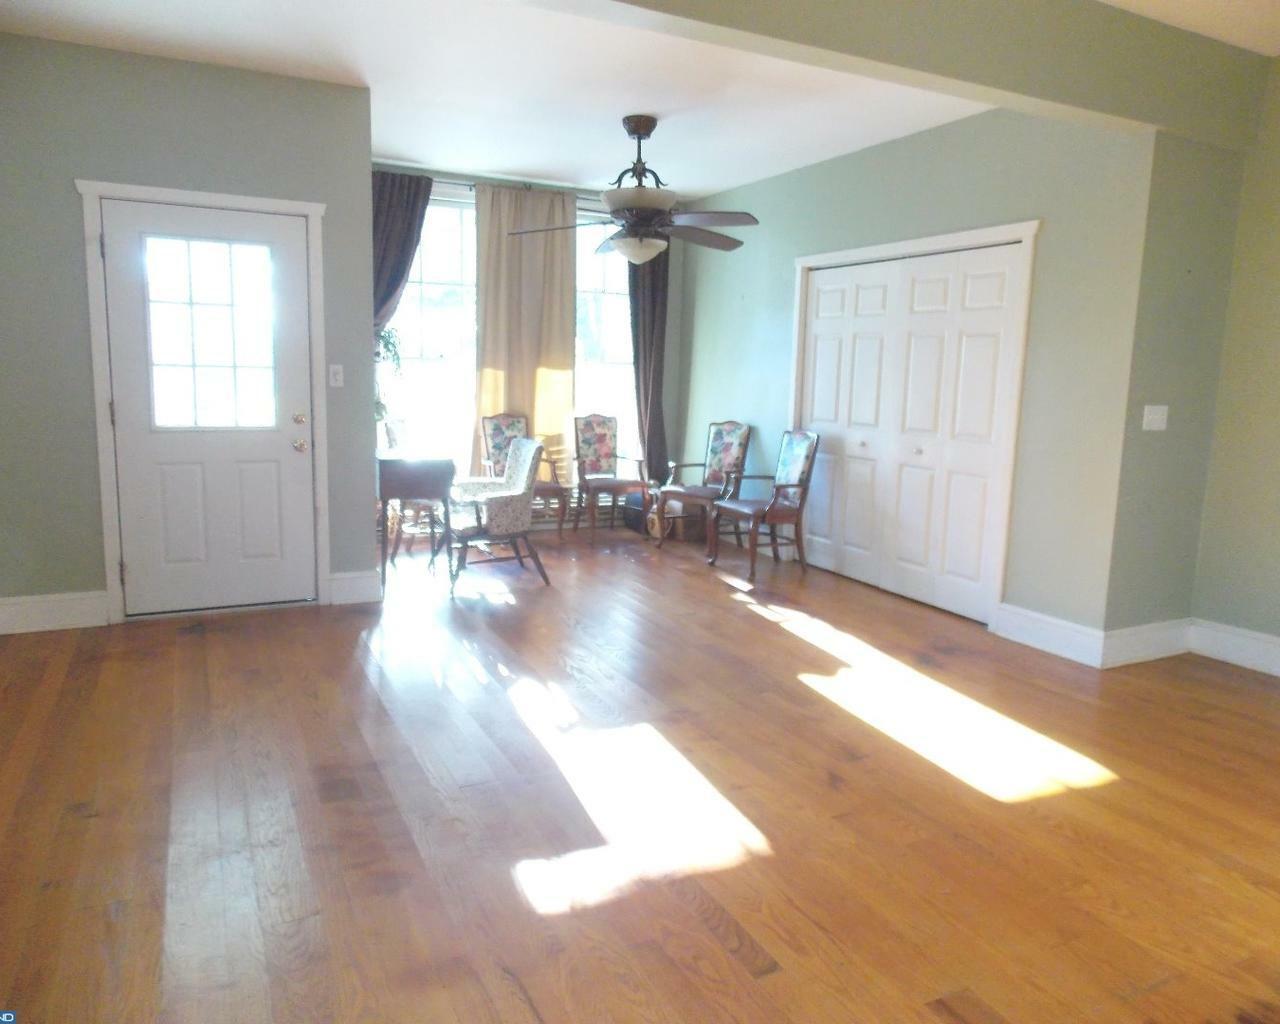 54 Chesterfield Jacobstown, Wrightstown, NJ - USA (photo 5)